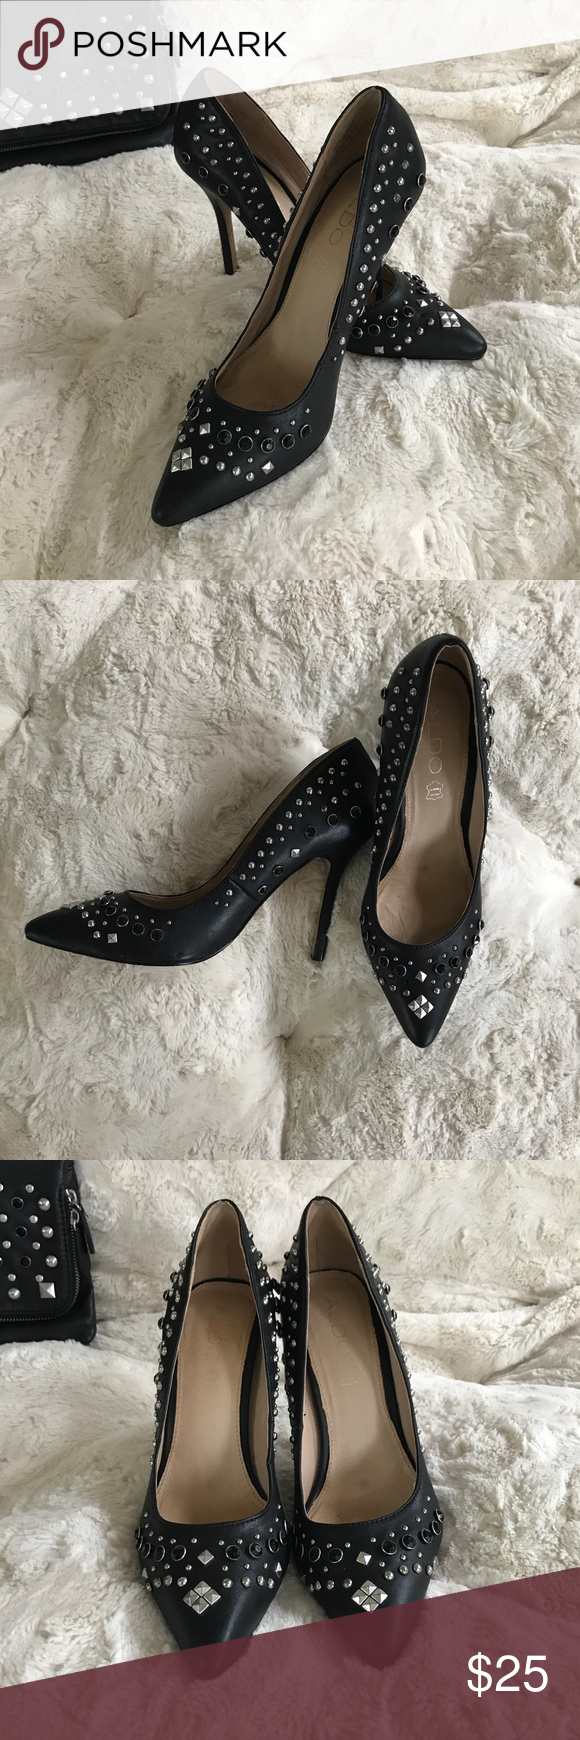 Aldo heels Black embellished heels. Worn only a couple times. Unfortunately missing a couple gems (pictures). Yes, there is a matching bag! Aldo size: EUR 38/US 7.5. Aldo Shoes Heels